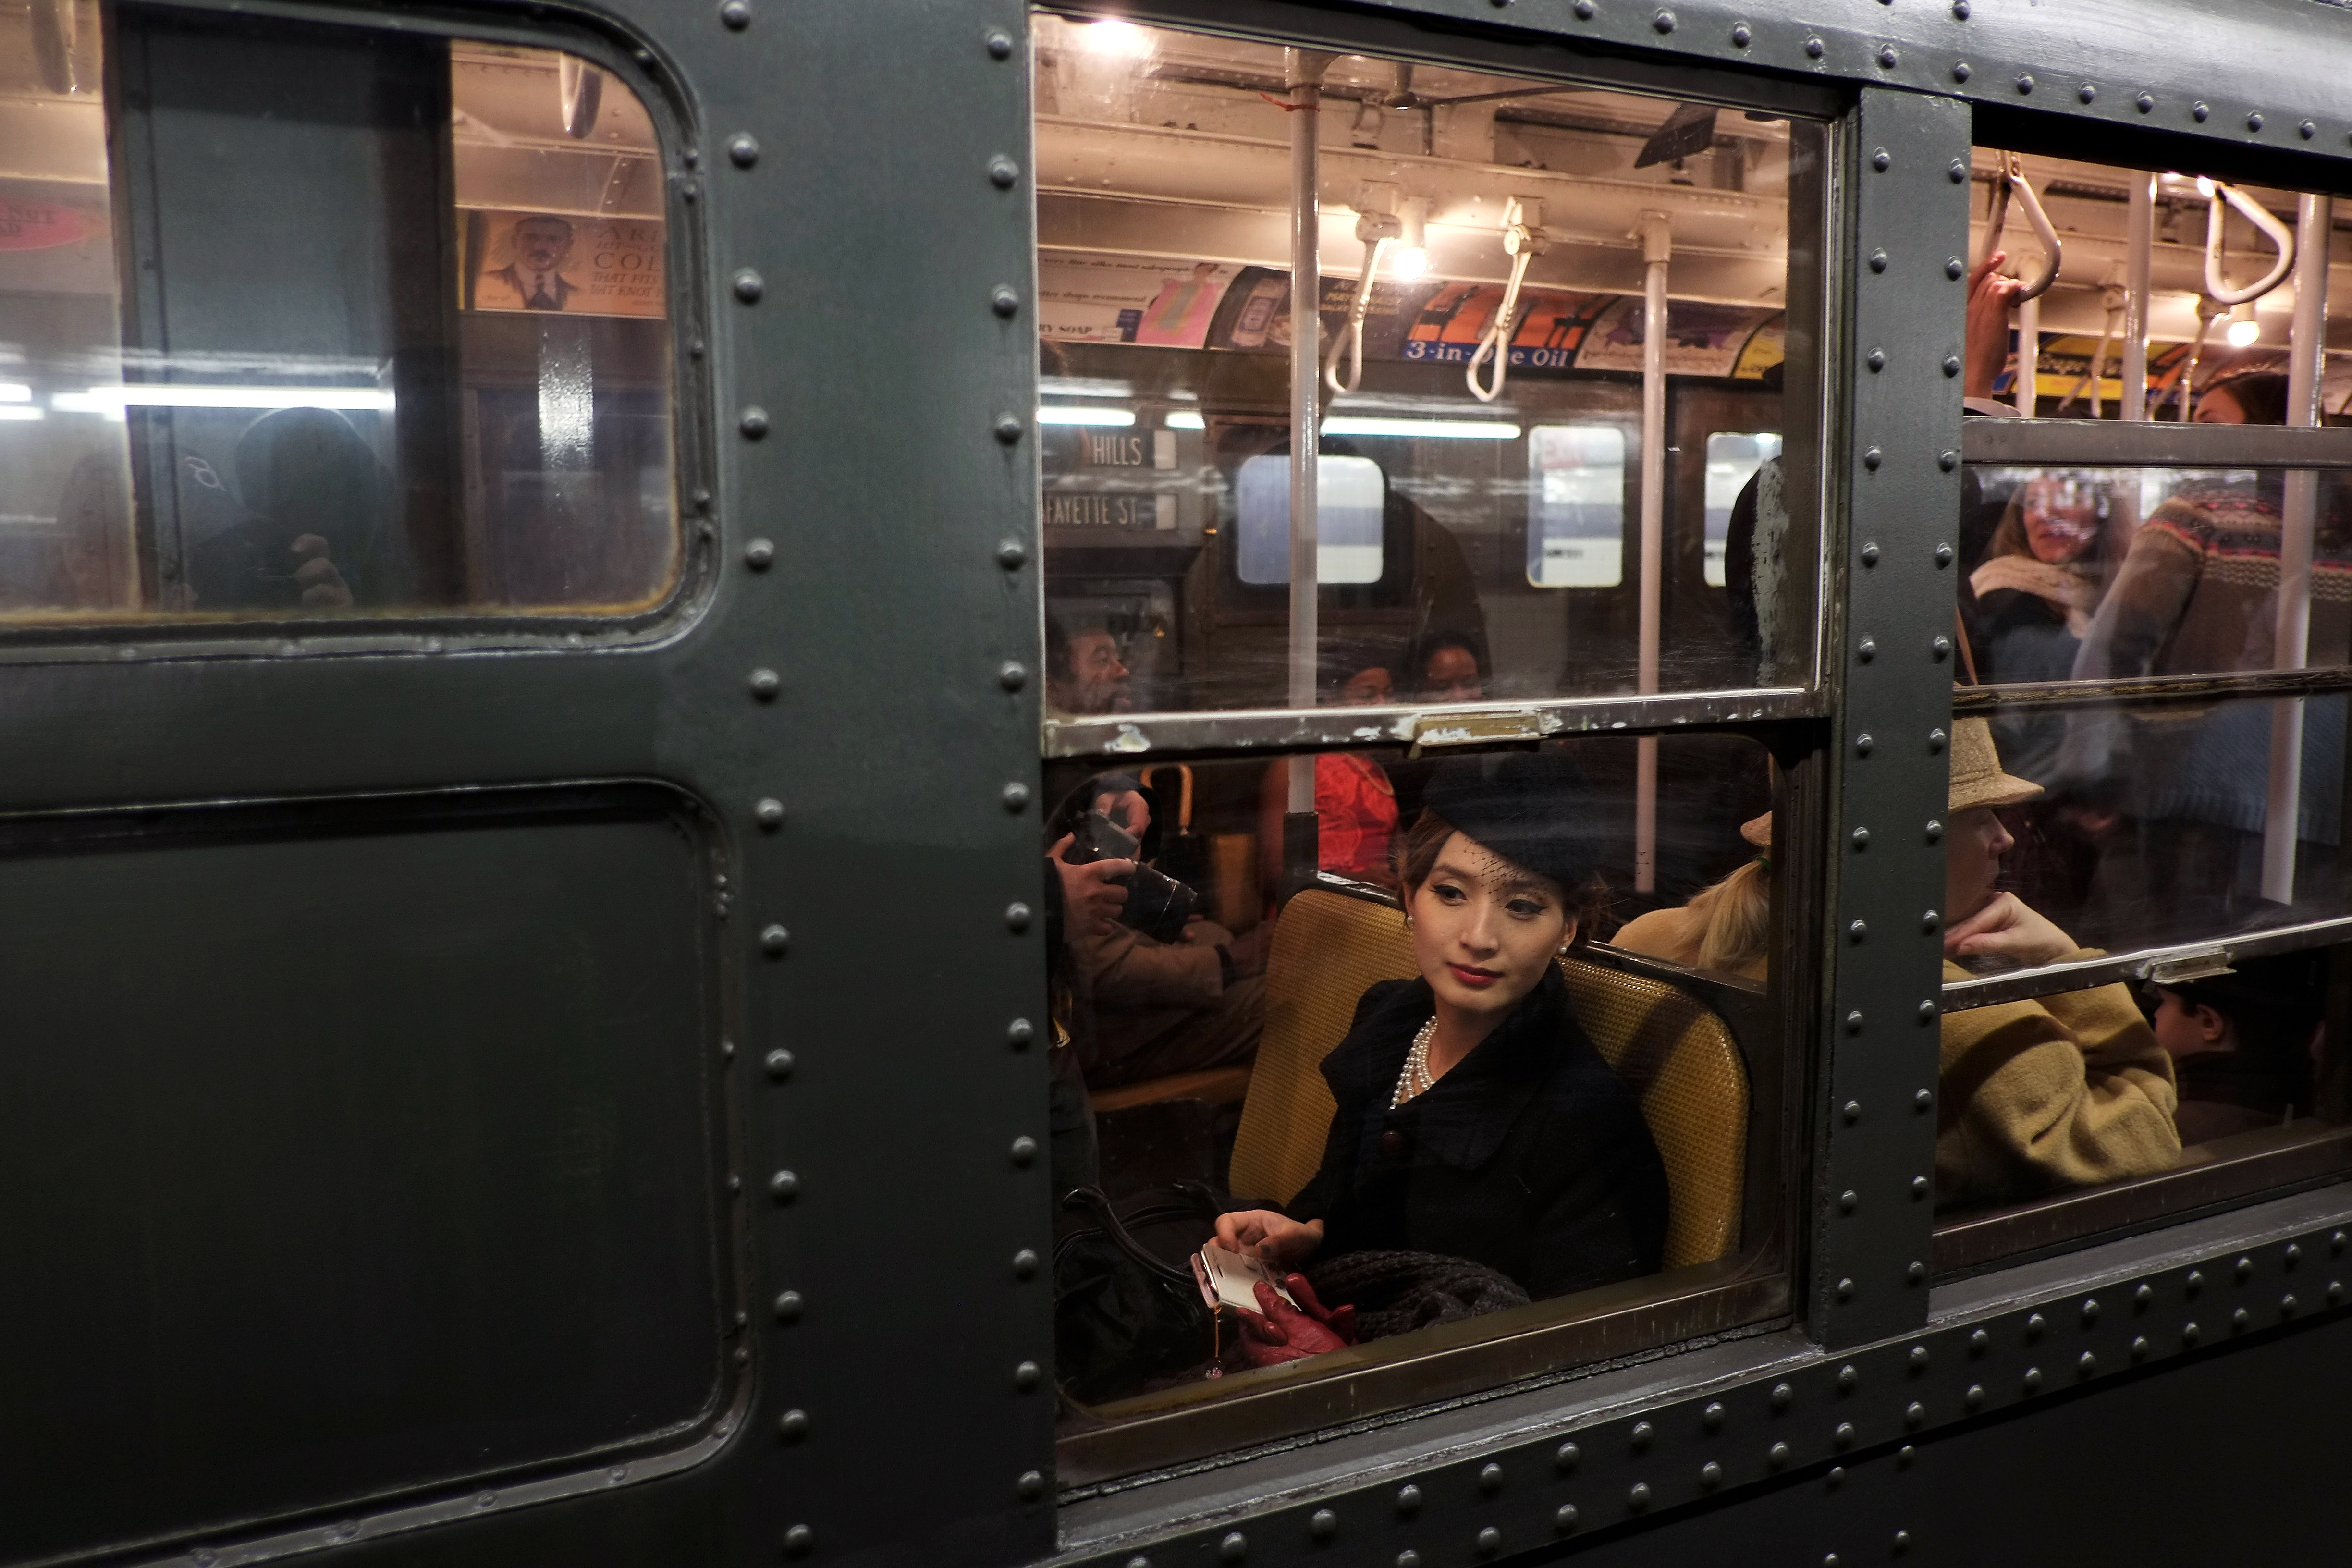 Riders Enjoy Vintage New York City Subway Trains In Annual Holiday Tradition